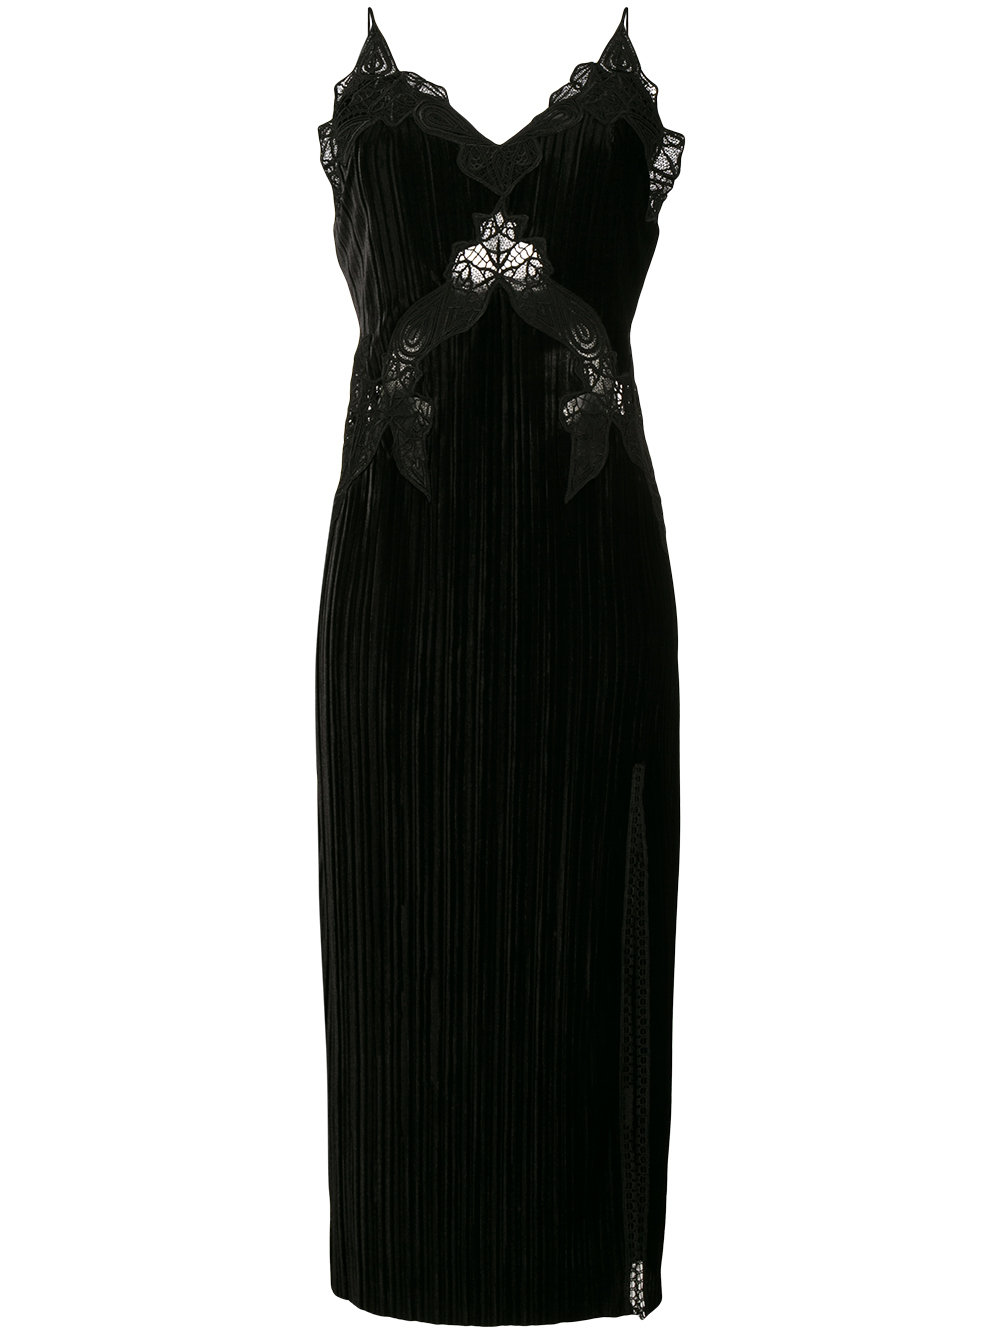 JONATHAN SIMKHAI dress - $895